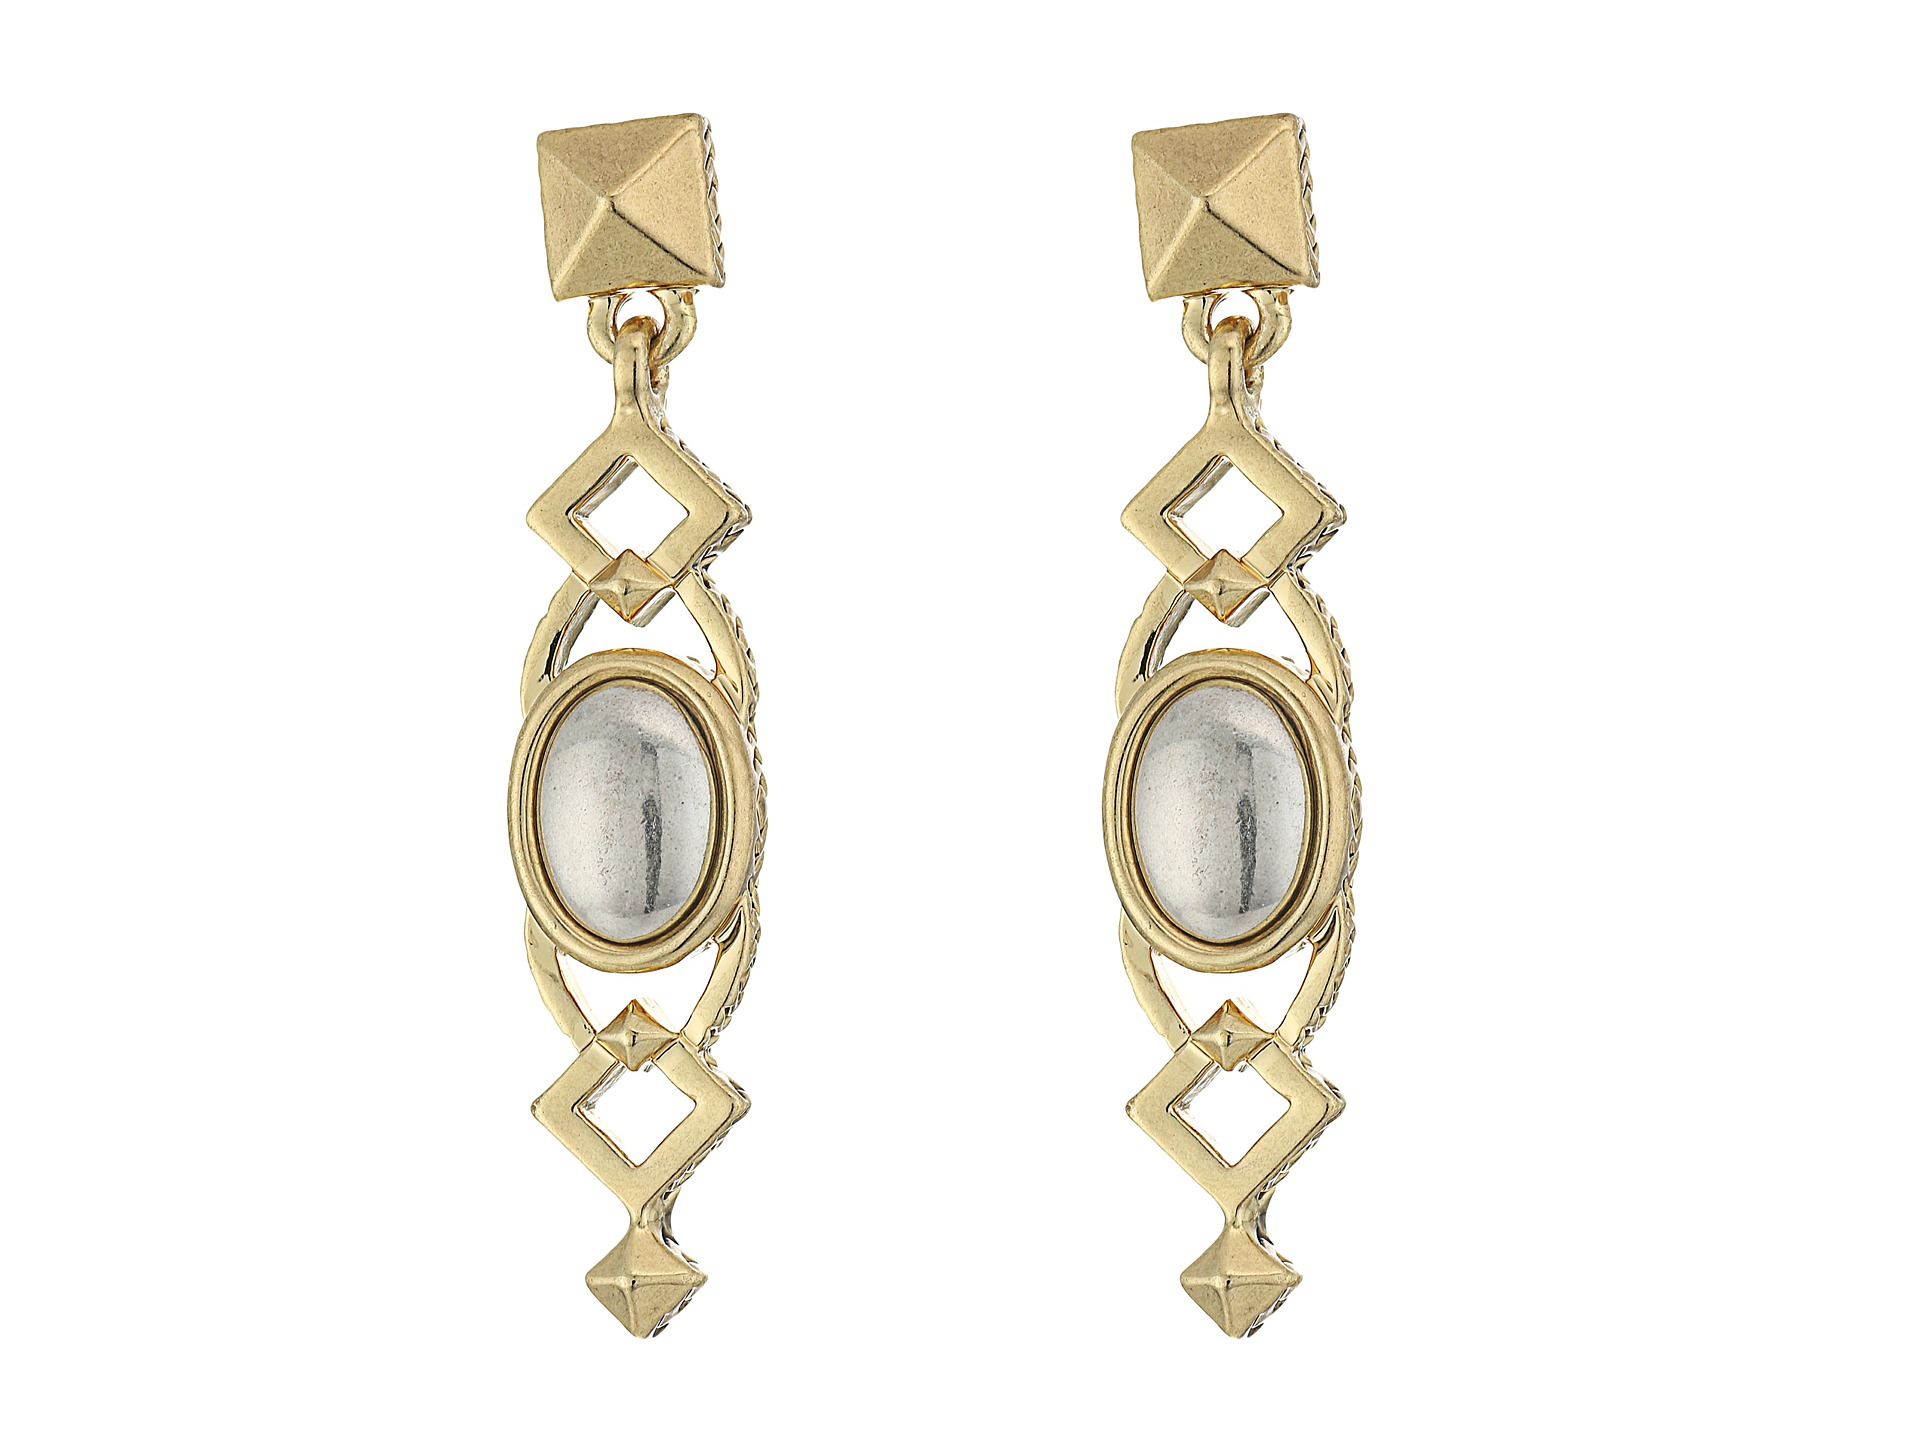 House Of Harlow House of Harlow Lady Of Grace Drop Earring in Metallic Gold 054cNt3e